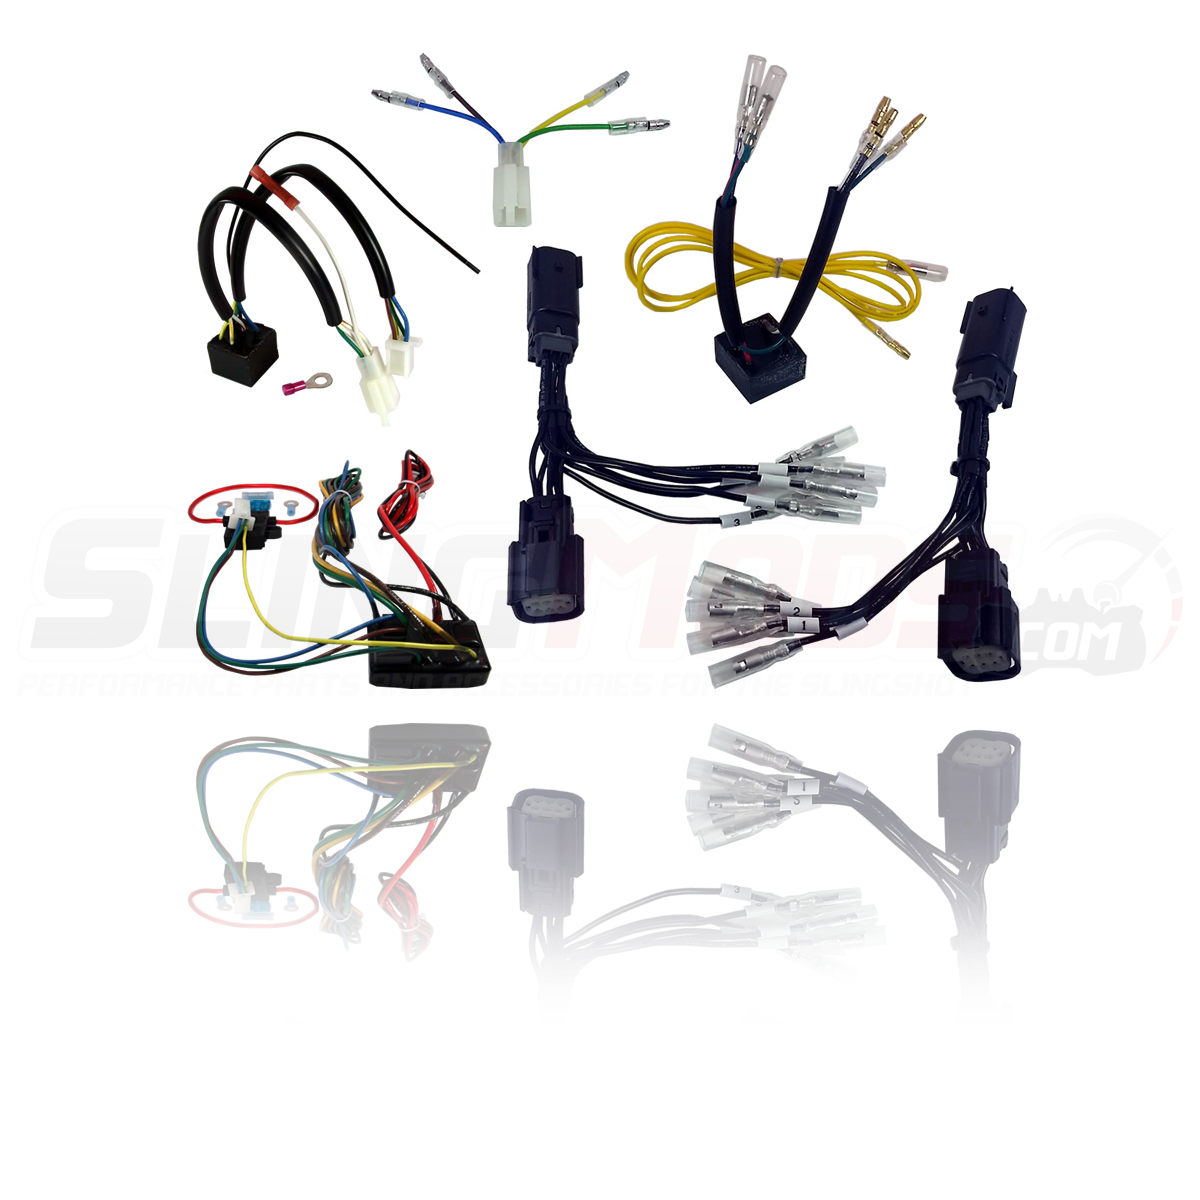 Polaris Slingshot Trailer Hitch Wiring Harness